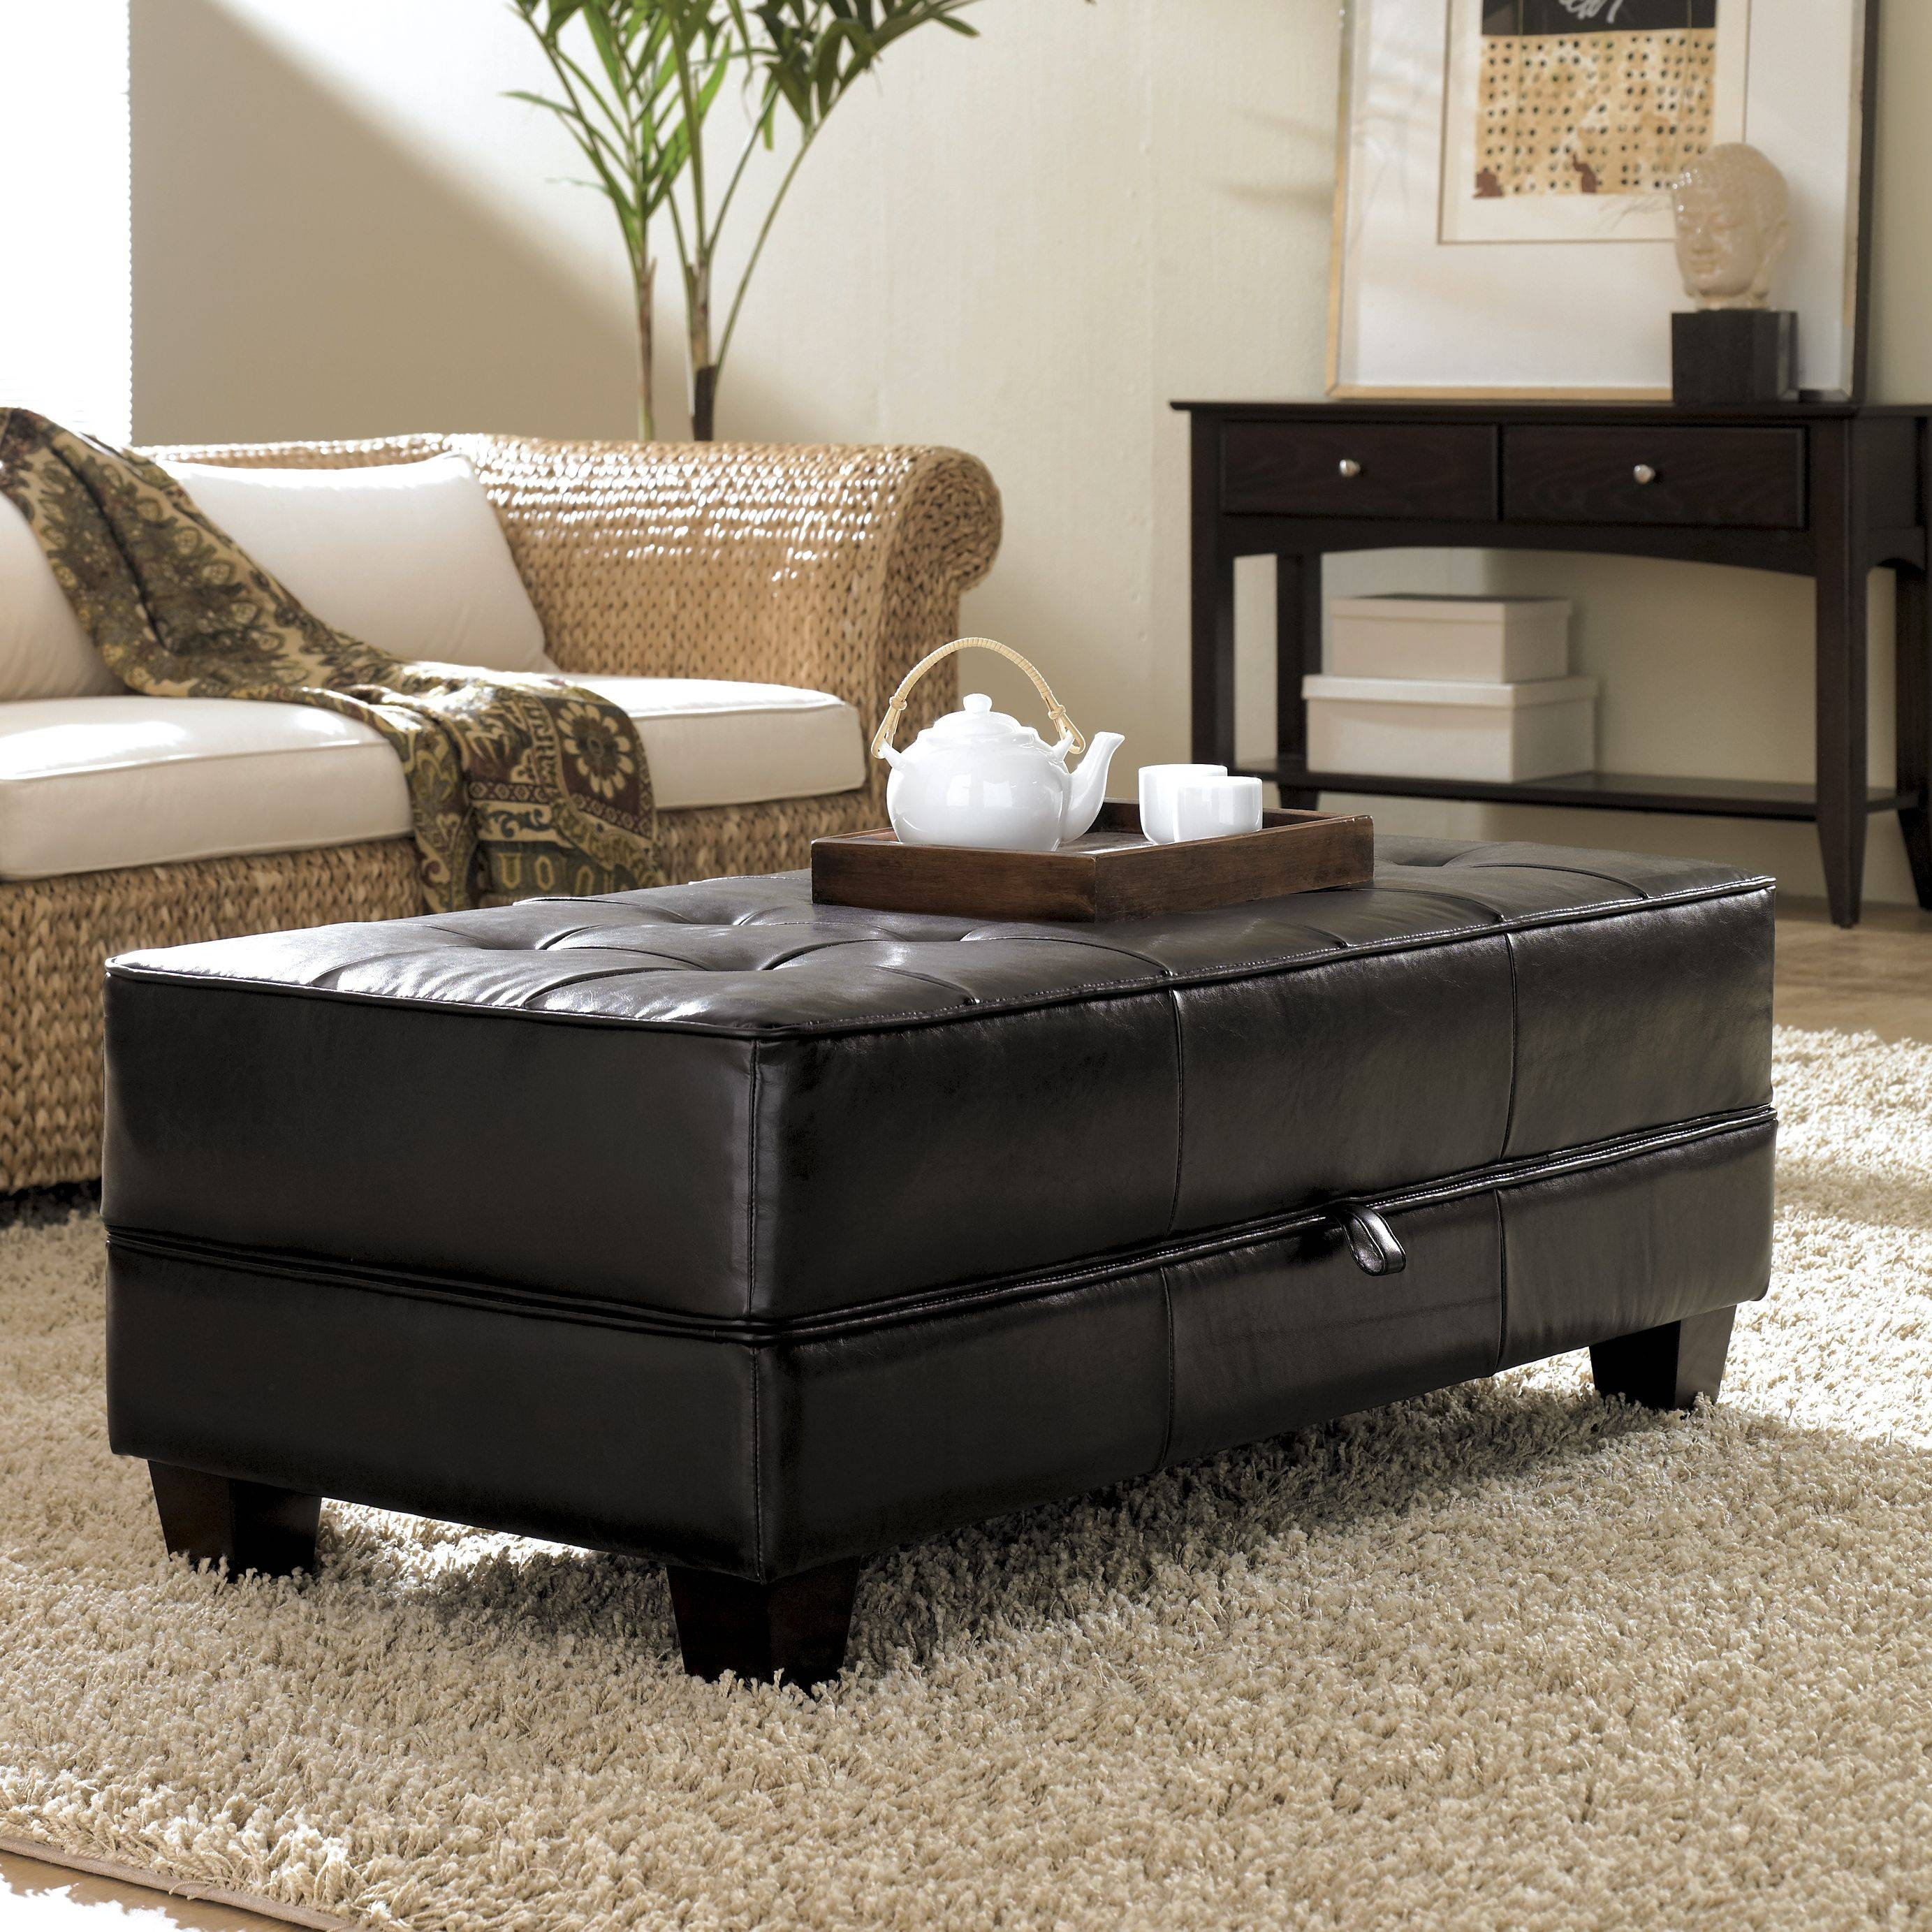 4 Tray Top Black Leather Storage Ottoman Coffee Table | Coffee throughout Brown Leather Ottoman Coffee Tables With Storages (Image 6 of 30)